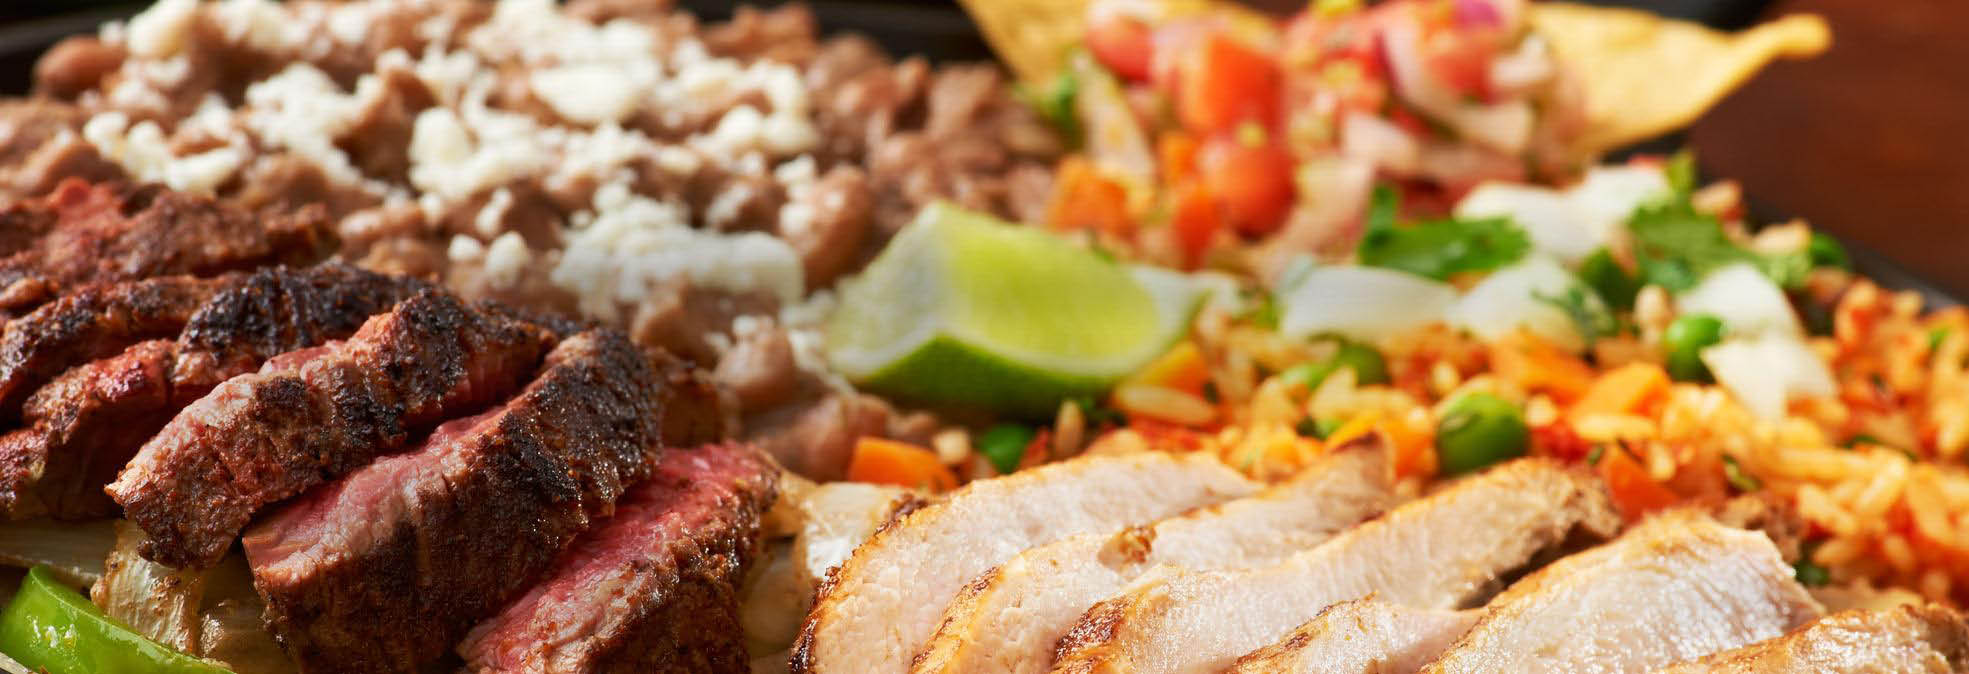 Delicious Mexican food combination meals at La Hacienda banner